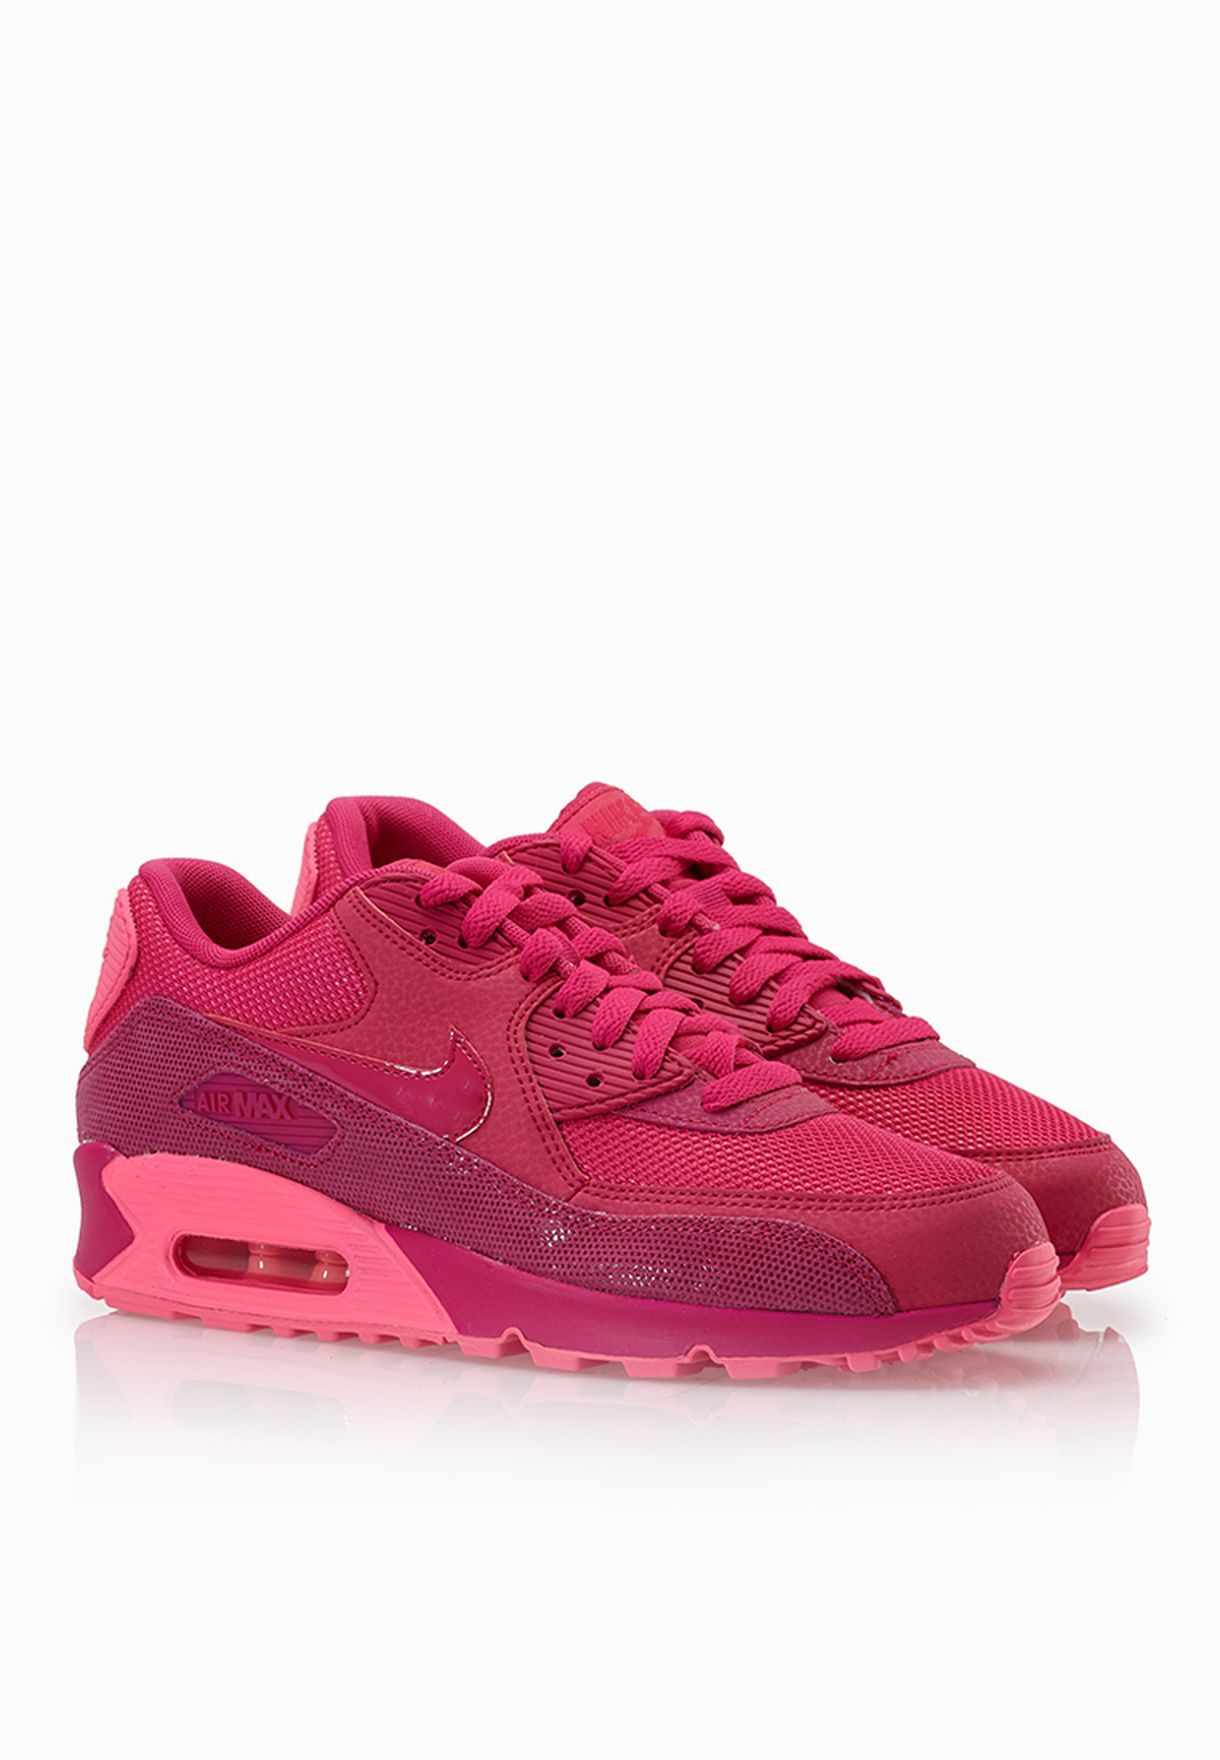 new product fd2fe 215d1 Air Max 90 Prem Sneakers